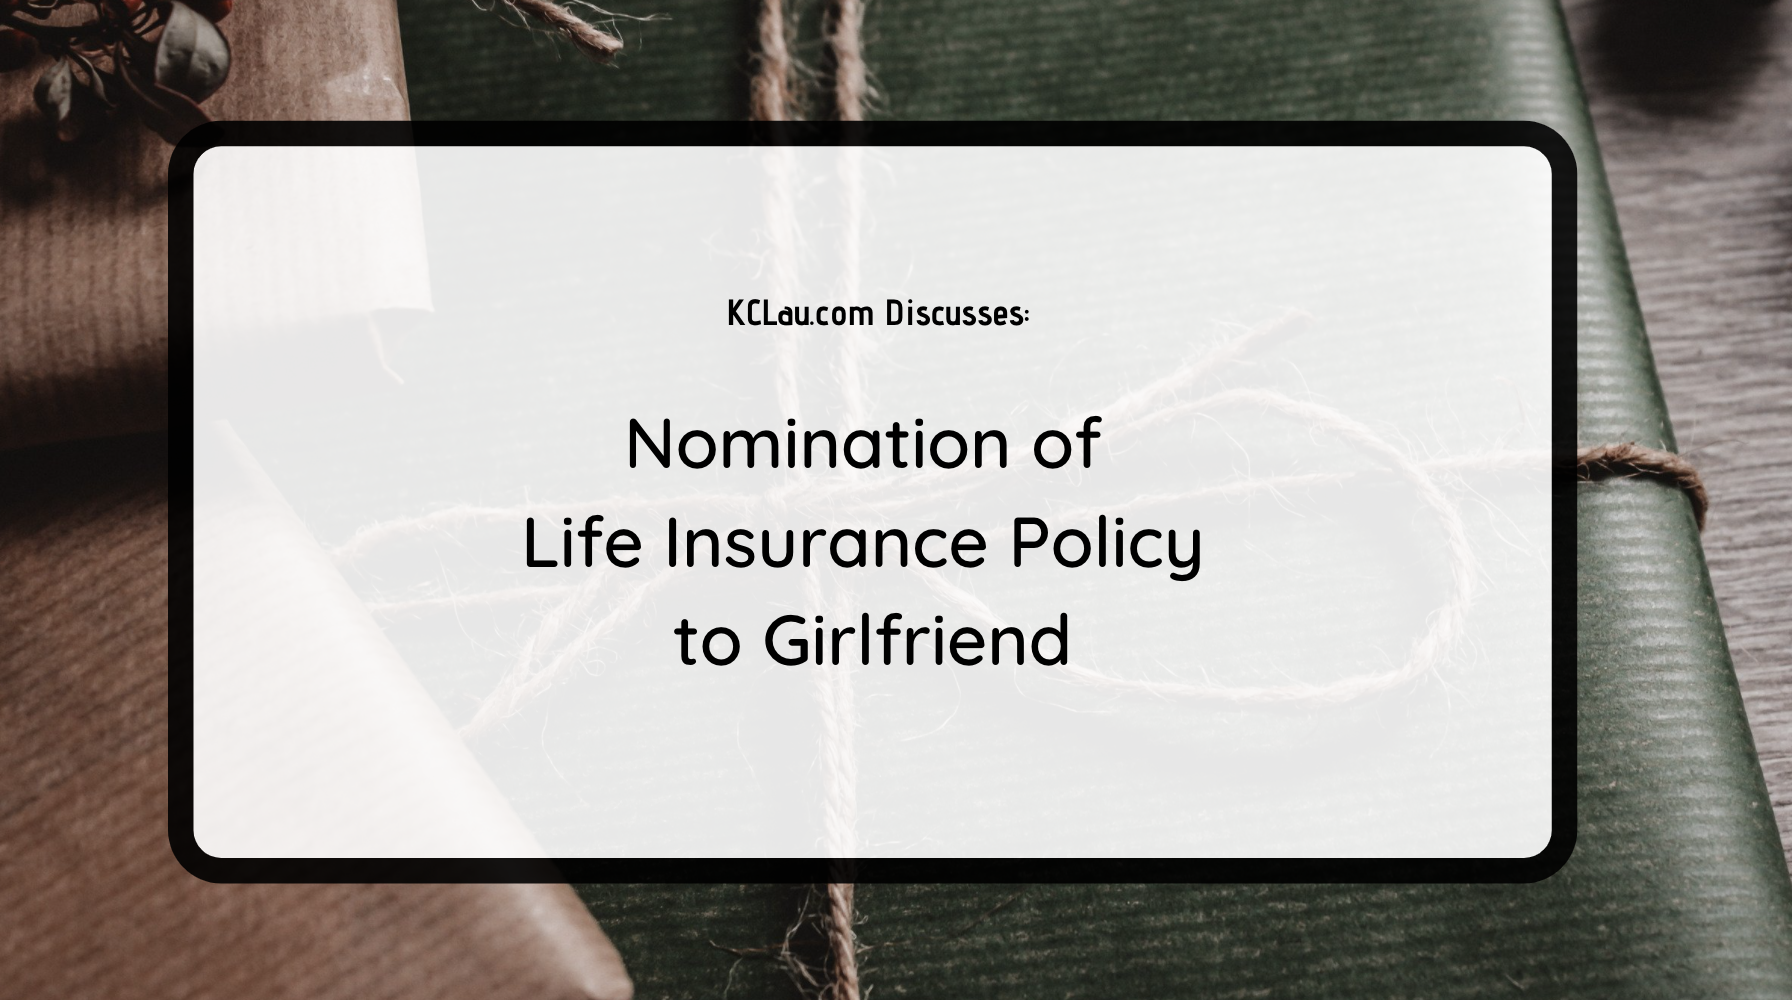 Nomination of Life Insurance Policy to Girlfriend